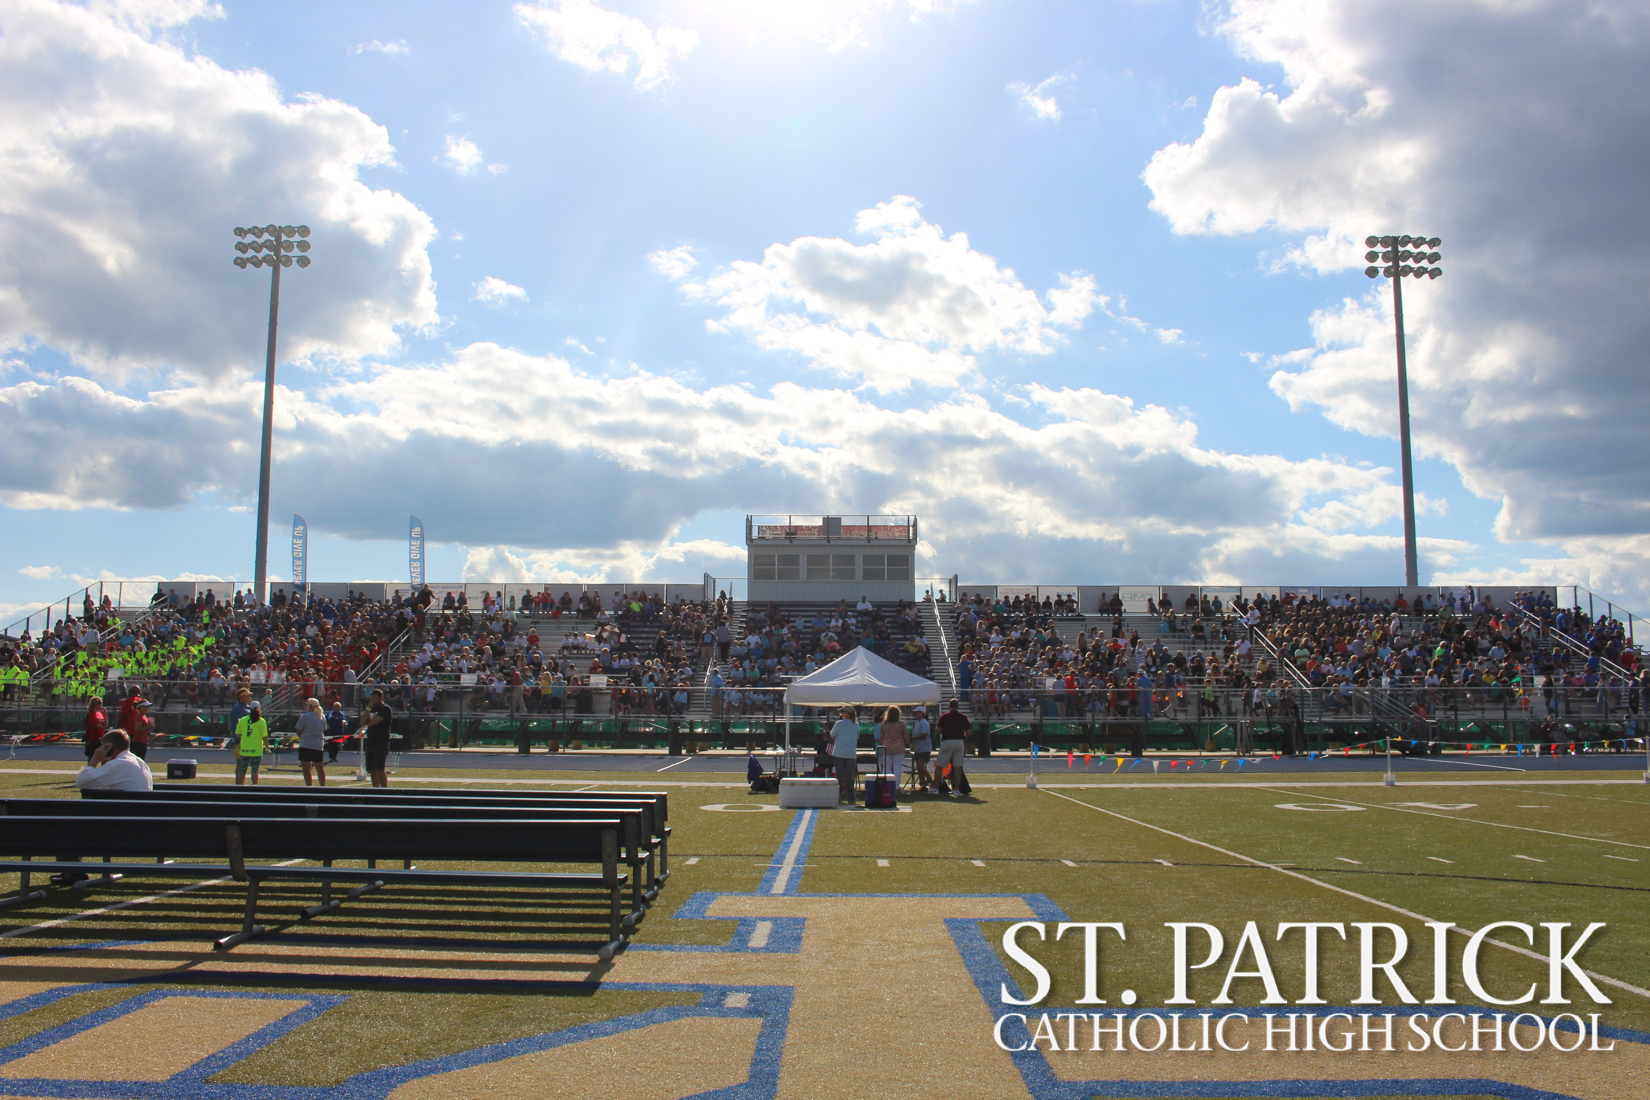 Annual Nativity track meet is held at St. Patrick